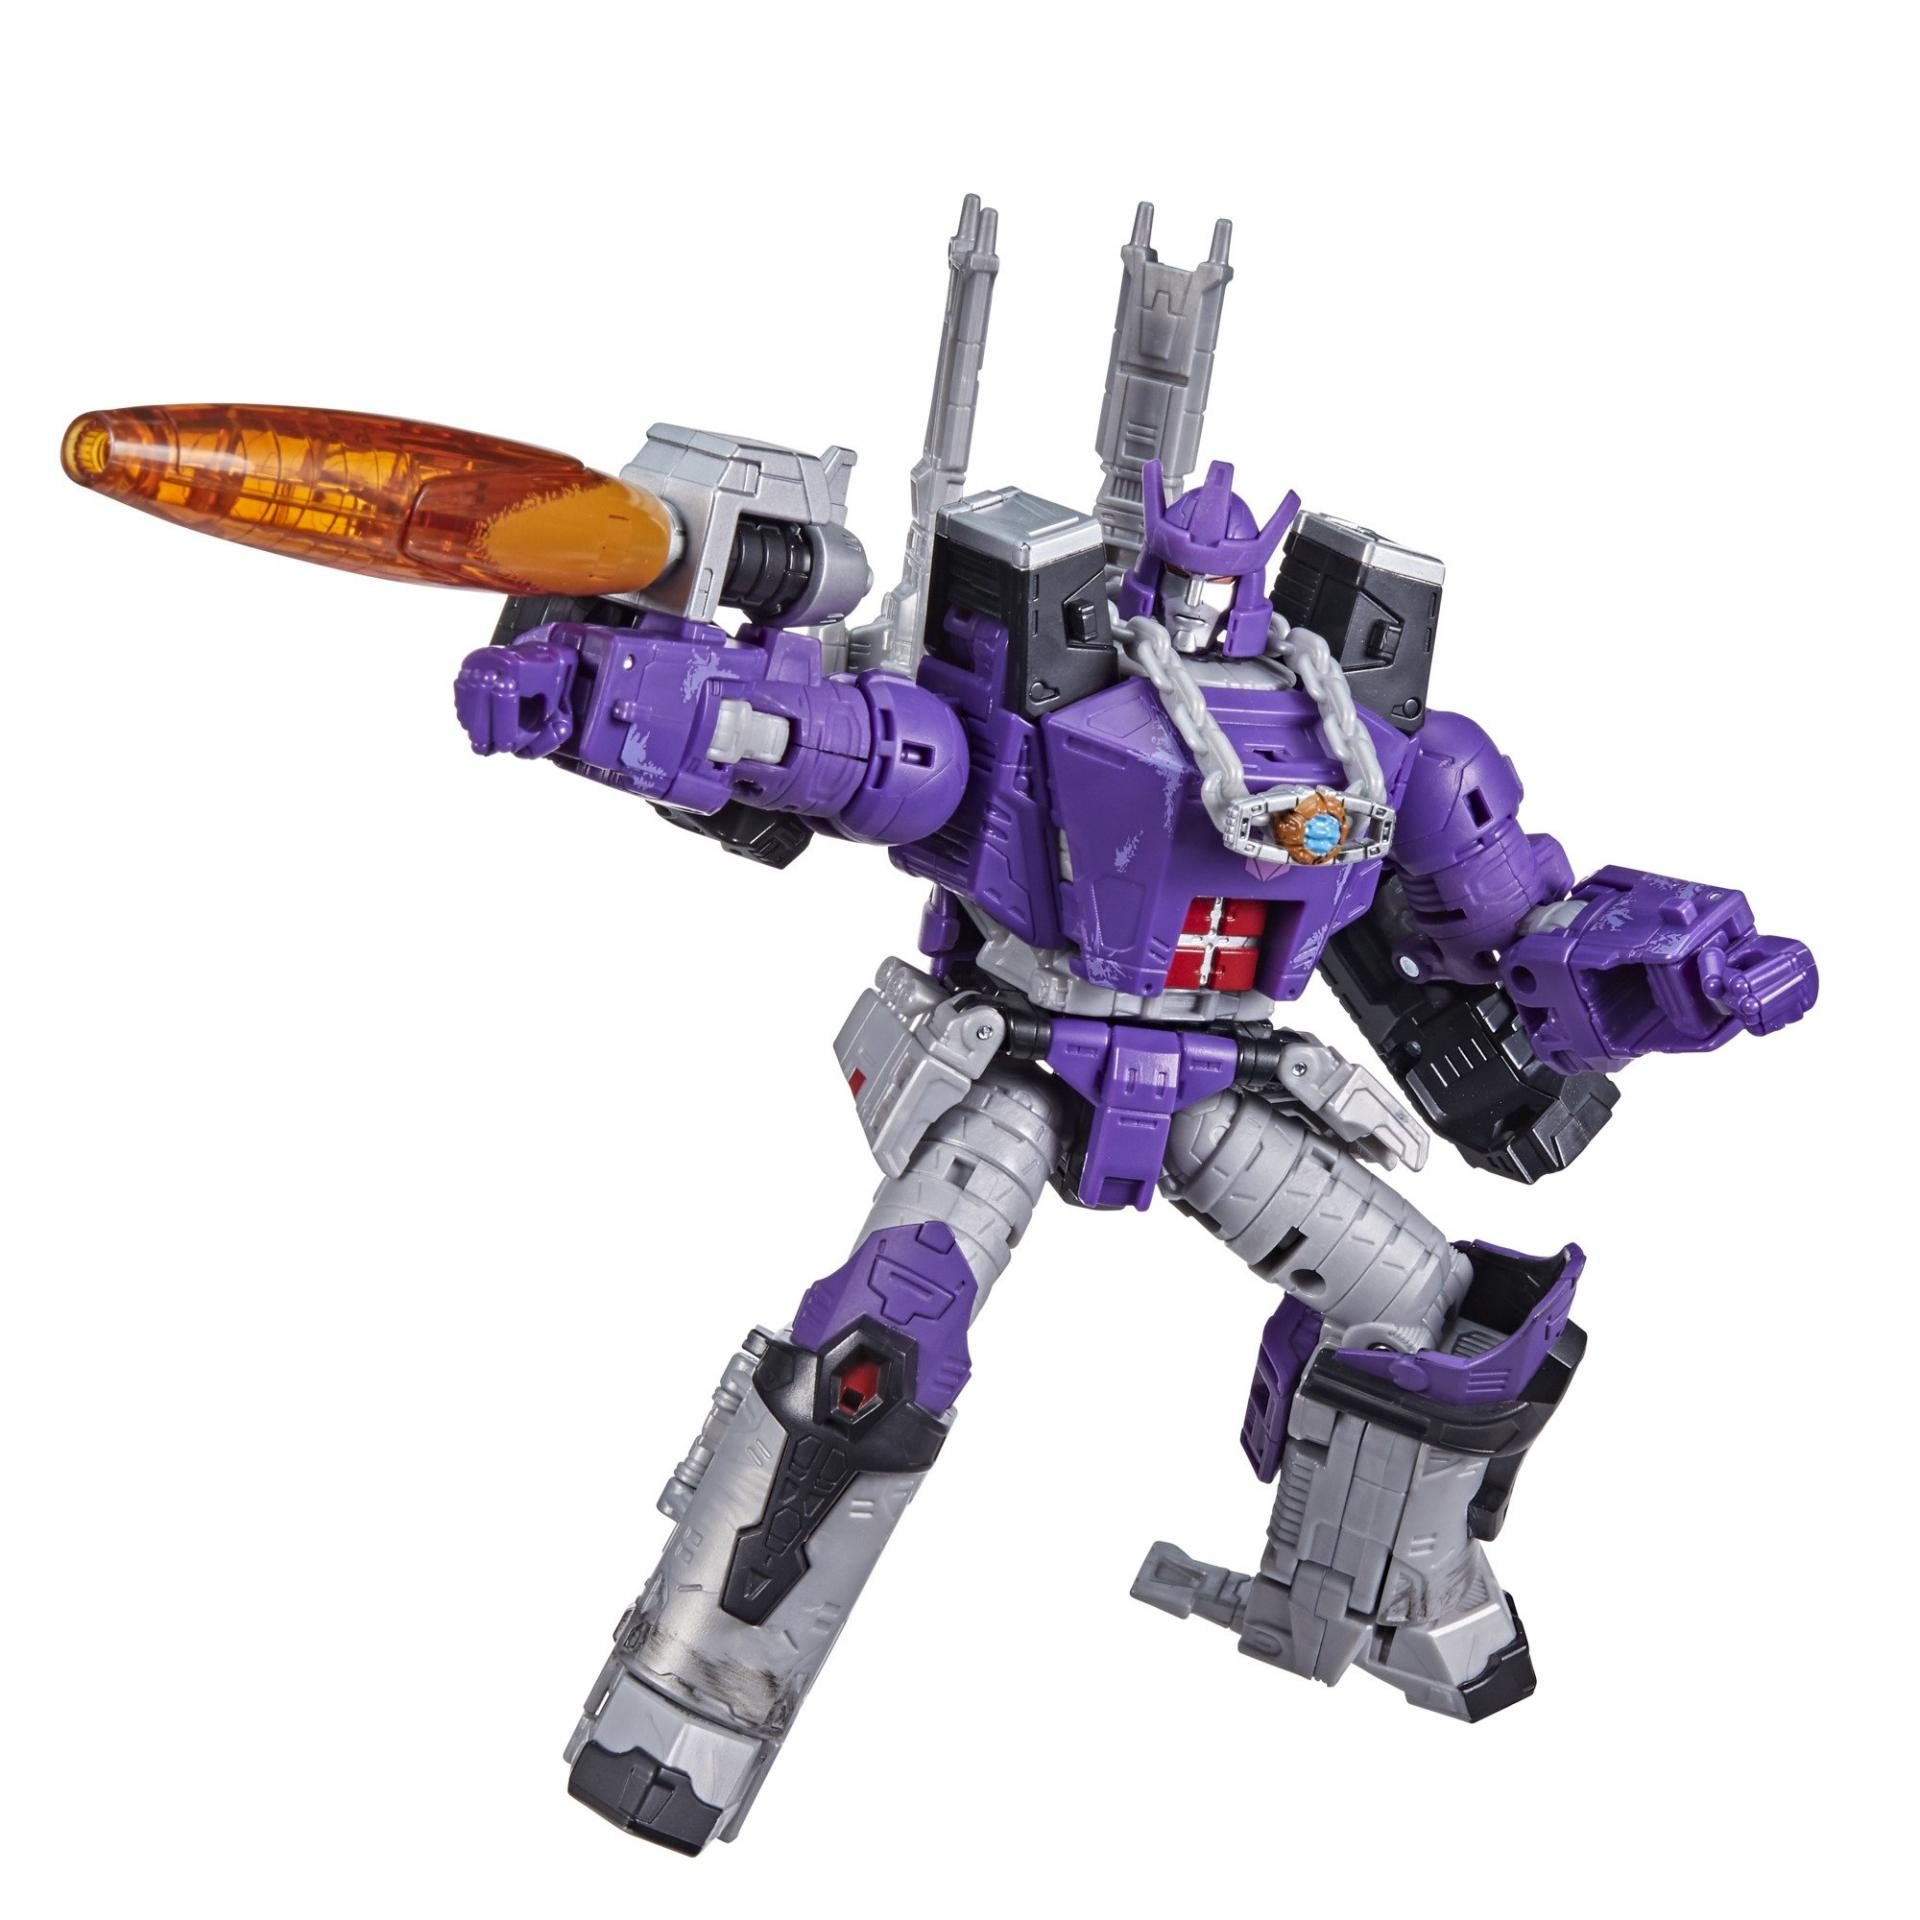 Transformers hasbro generations war for cybertron kingdom leader wfc k28 galvatron10